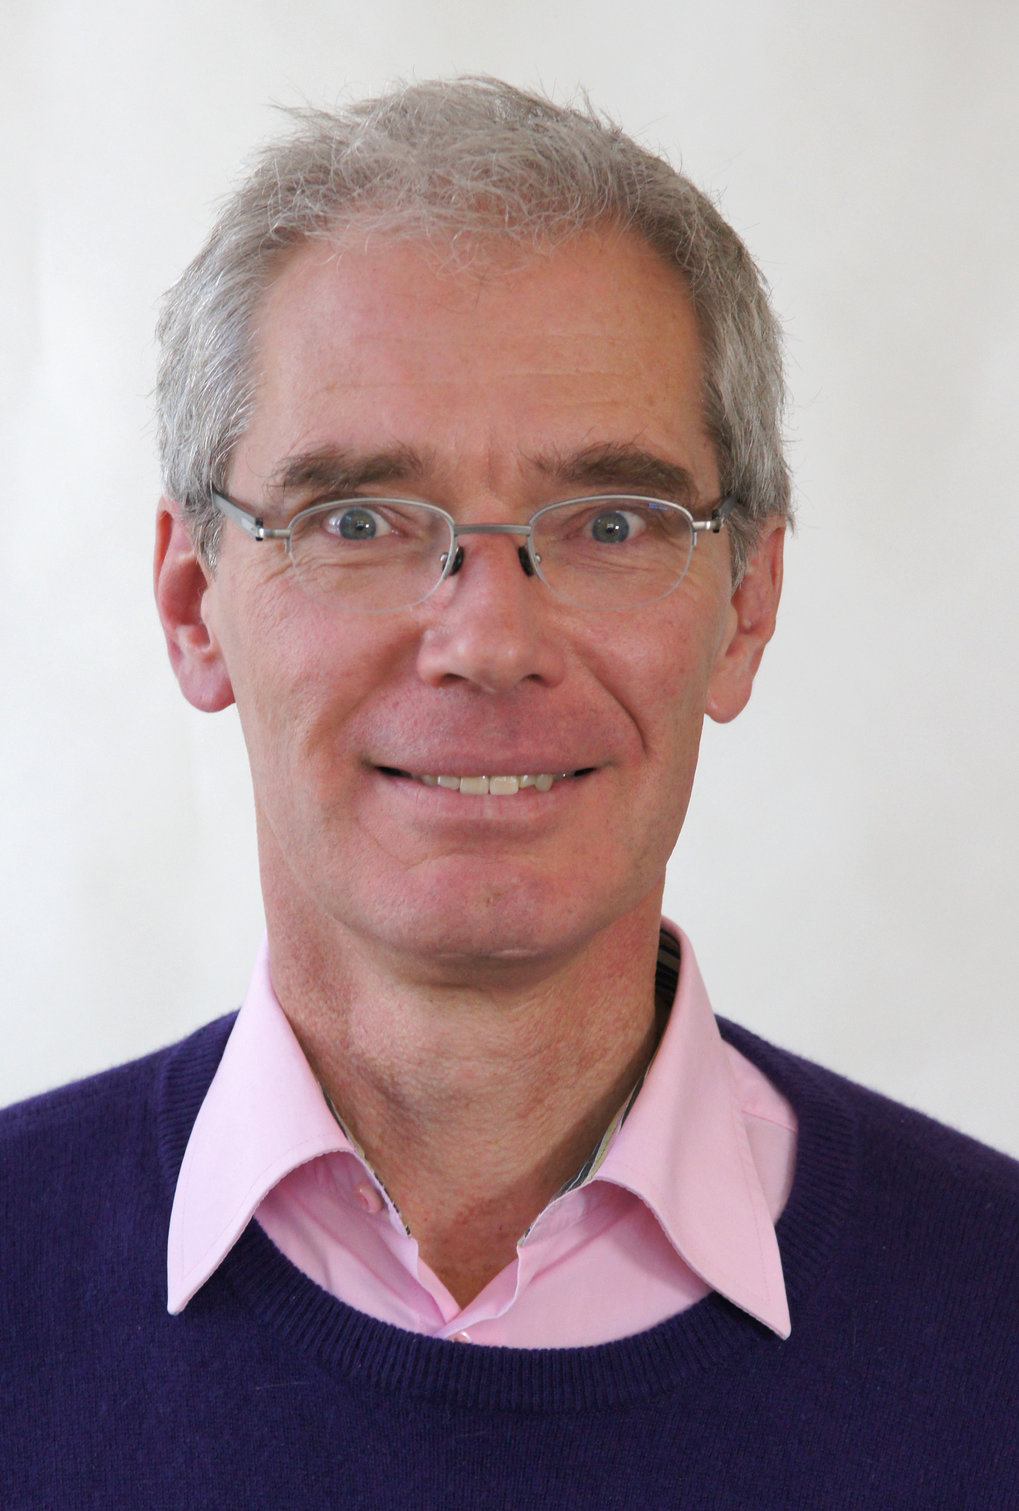 Prof. Dr. Martin Dressel<br />Director of the 1<sup>st</sup> Physics Institute, University of Stuttgart <br /><br />Electronic, Magnetic and Optical Properties of Novel Materials